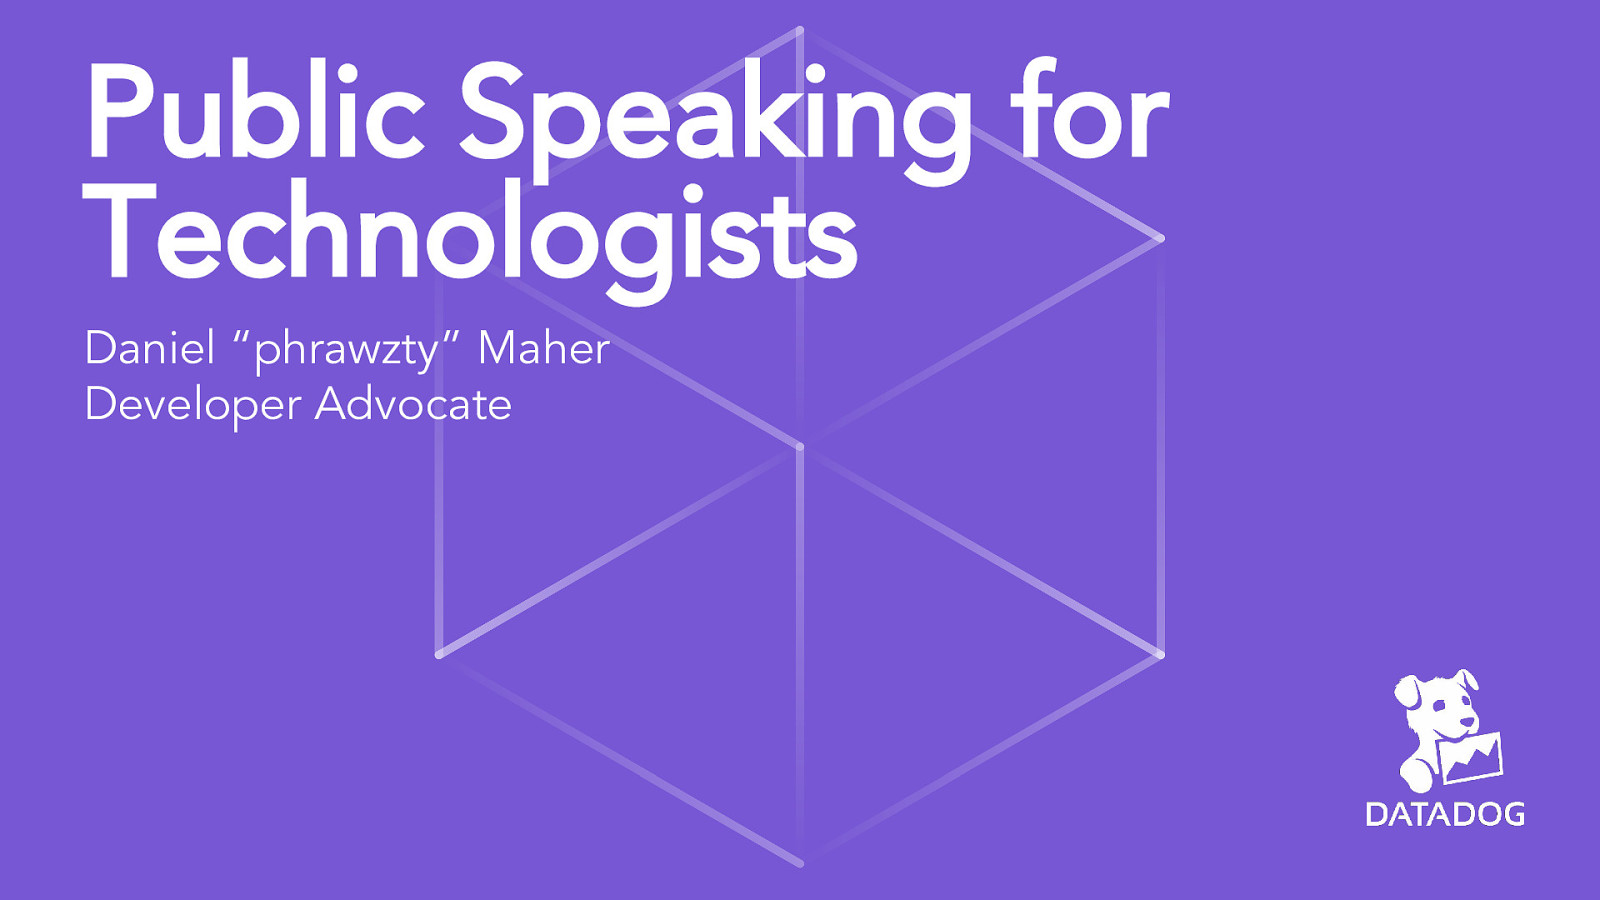 Public Speaking for Technologists